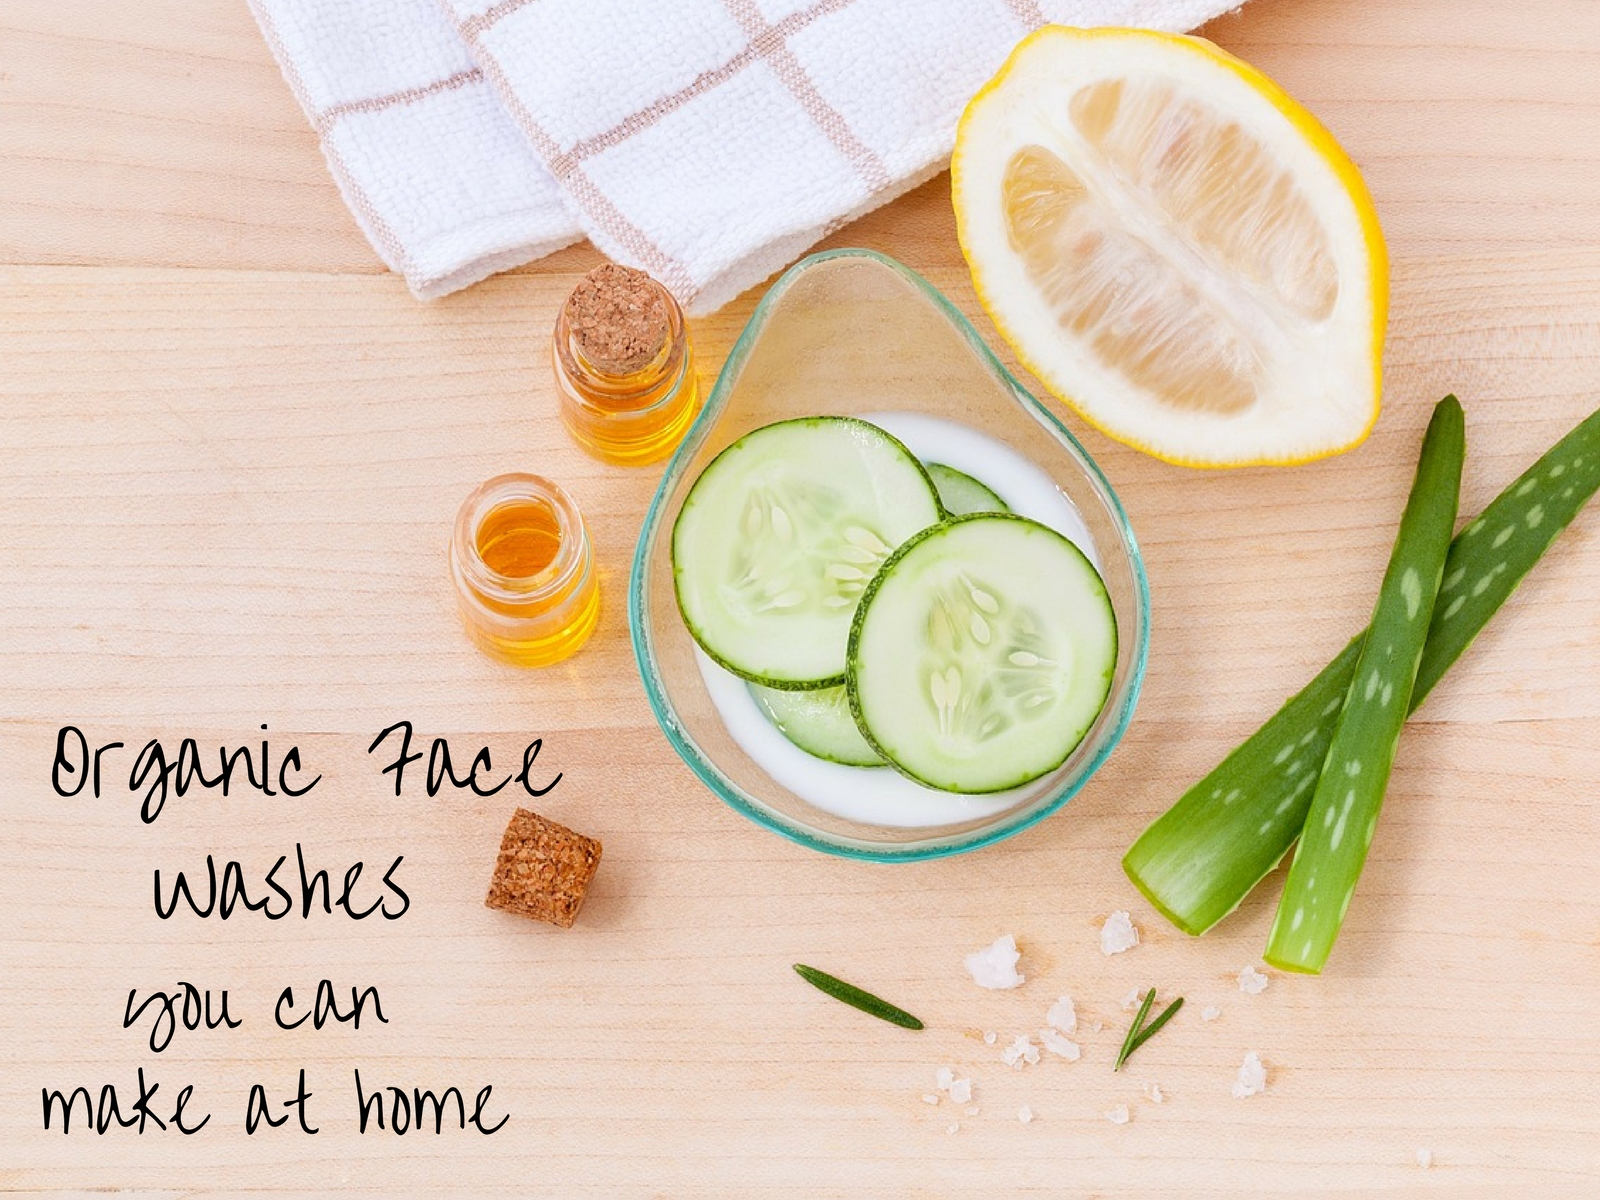 Organic Face Washes You Can Make At Home  via  www.productreviewmom.com